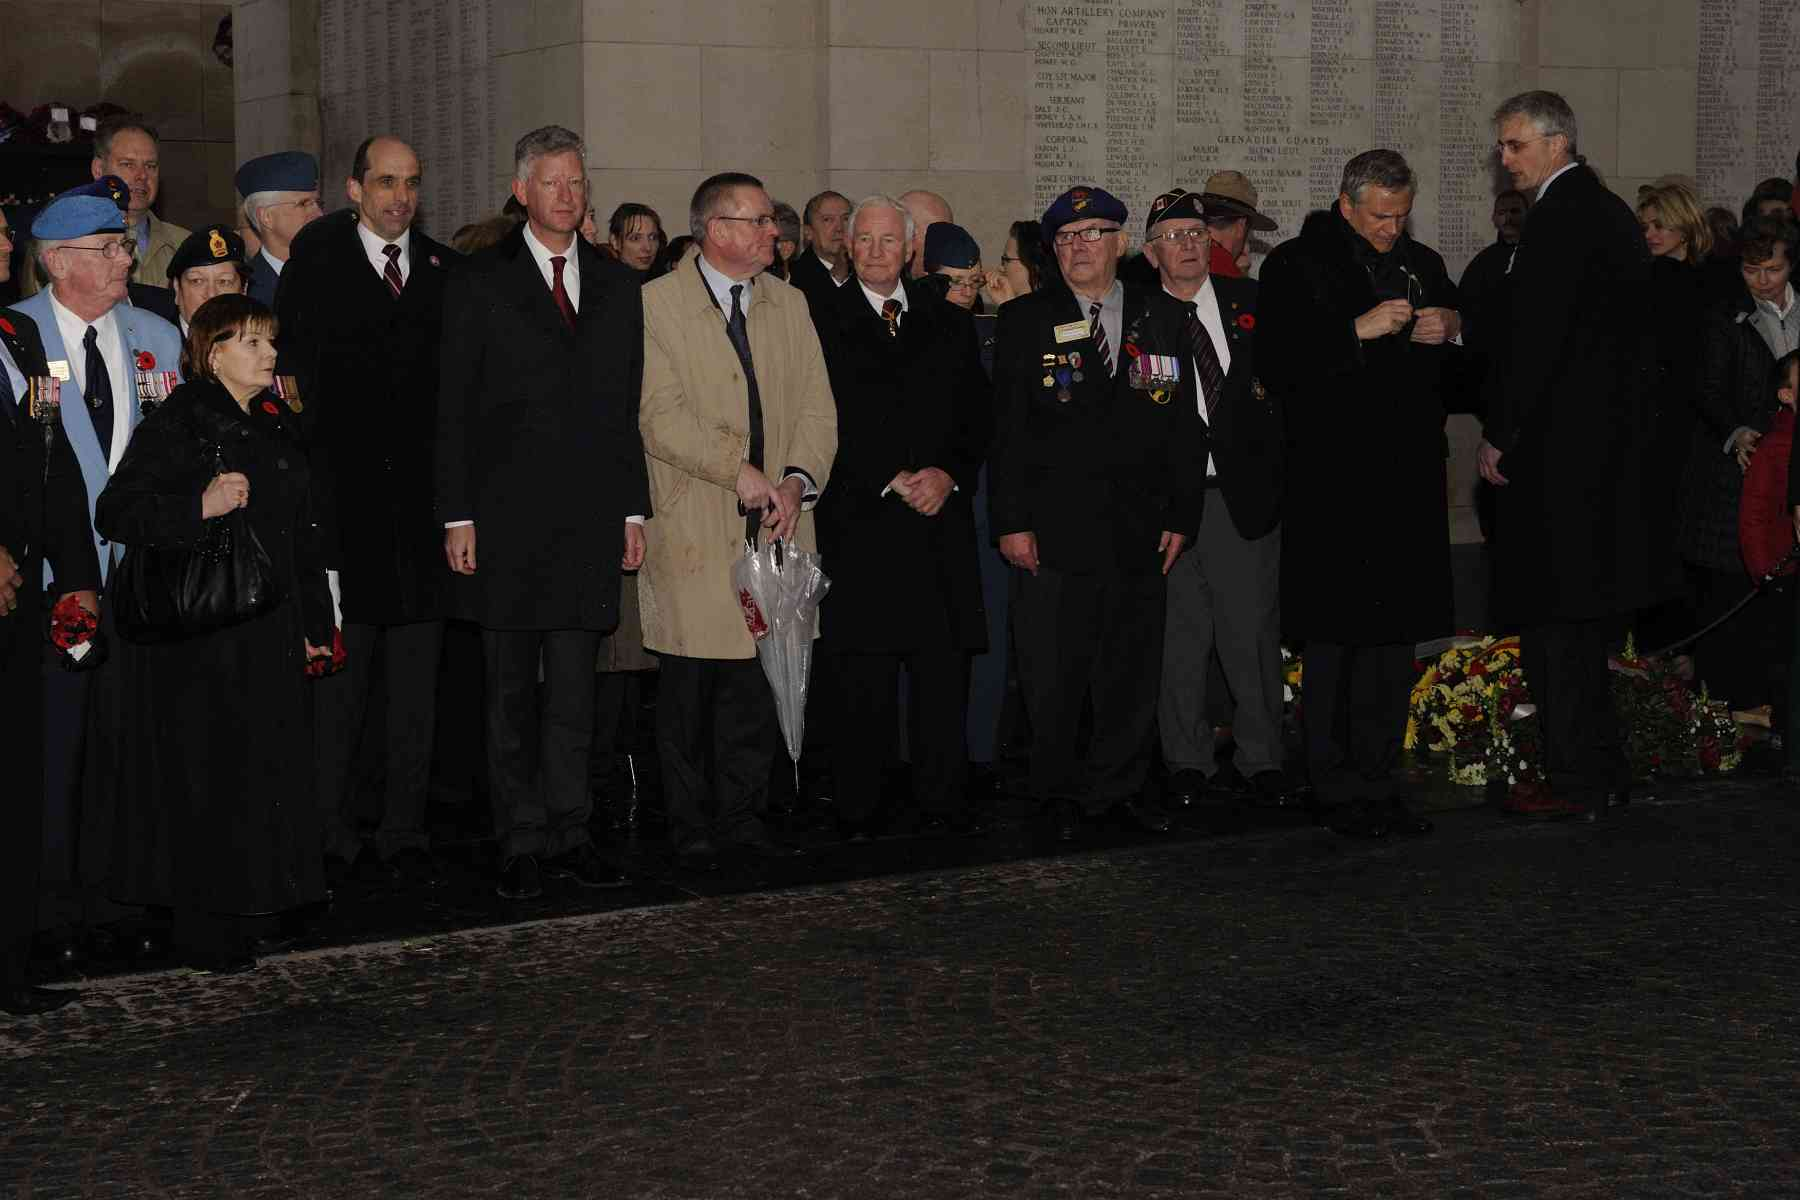 After the war, Menin Gate, a 17th century gate in the eastern ramparts of Ypres (Ieper), was chosen as the site of a Memorial Arch. The Arch commemorates, by name, nearly 55 000 dead of the armies of the Commonwealth who fell in Belgium. Of these, 6 940 are Canadians.